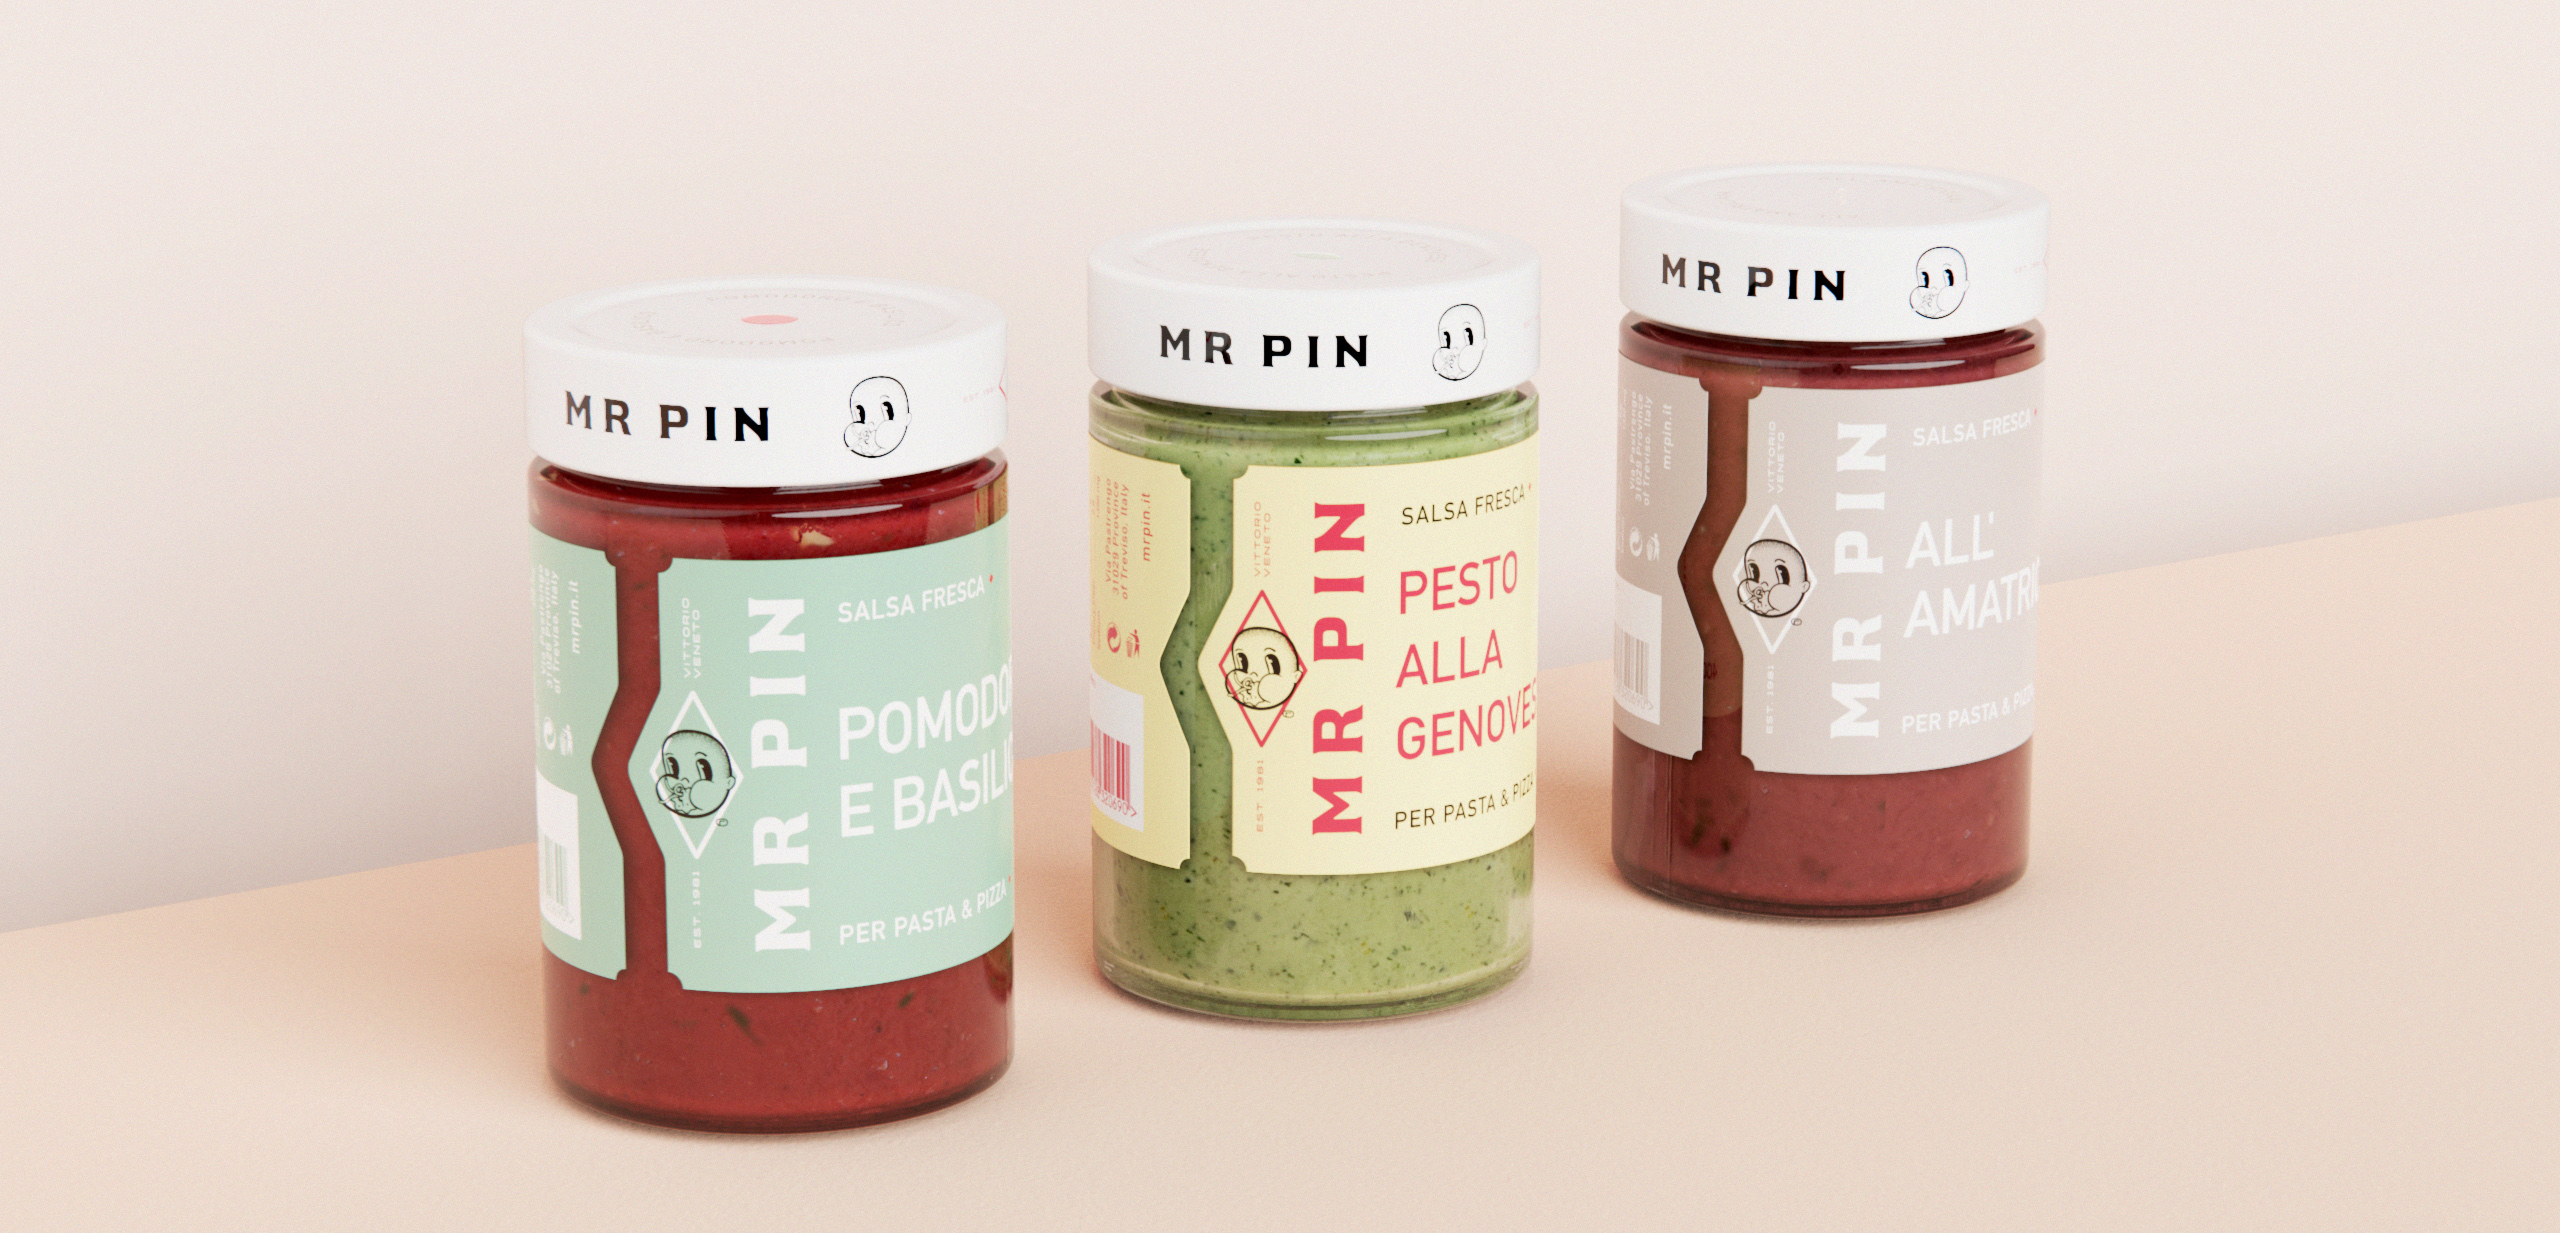 Product Identity for Italian Pasta and Pizza Sauce